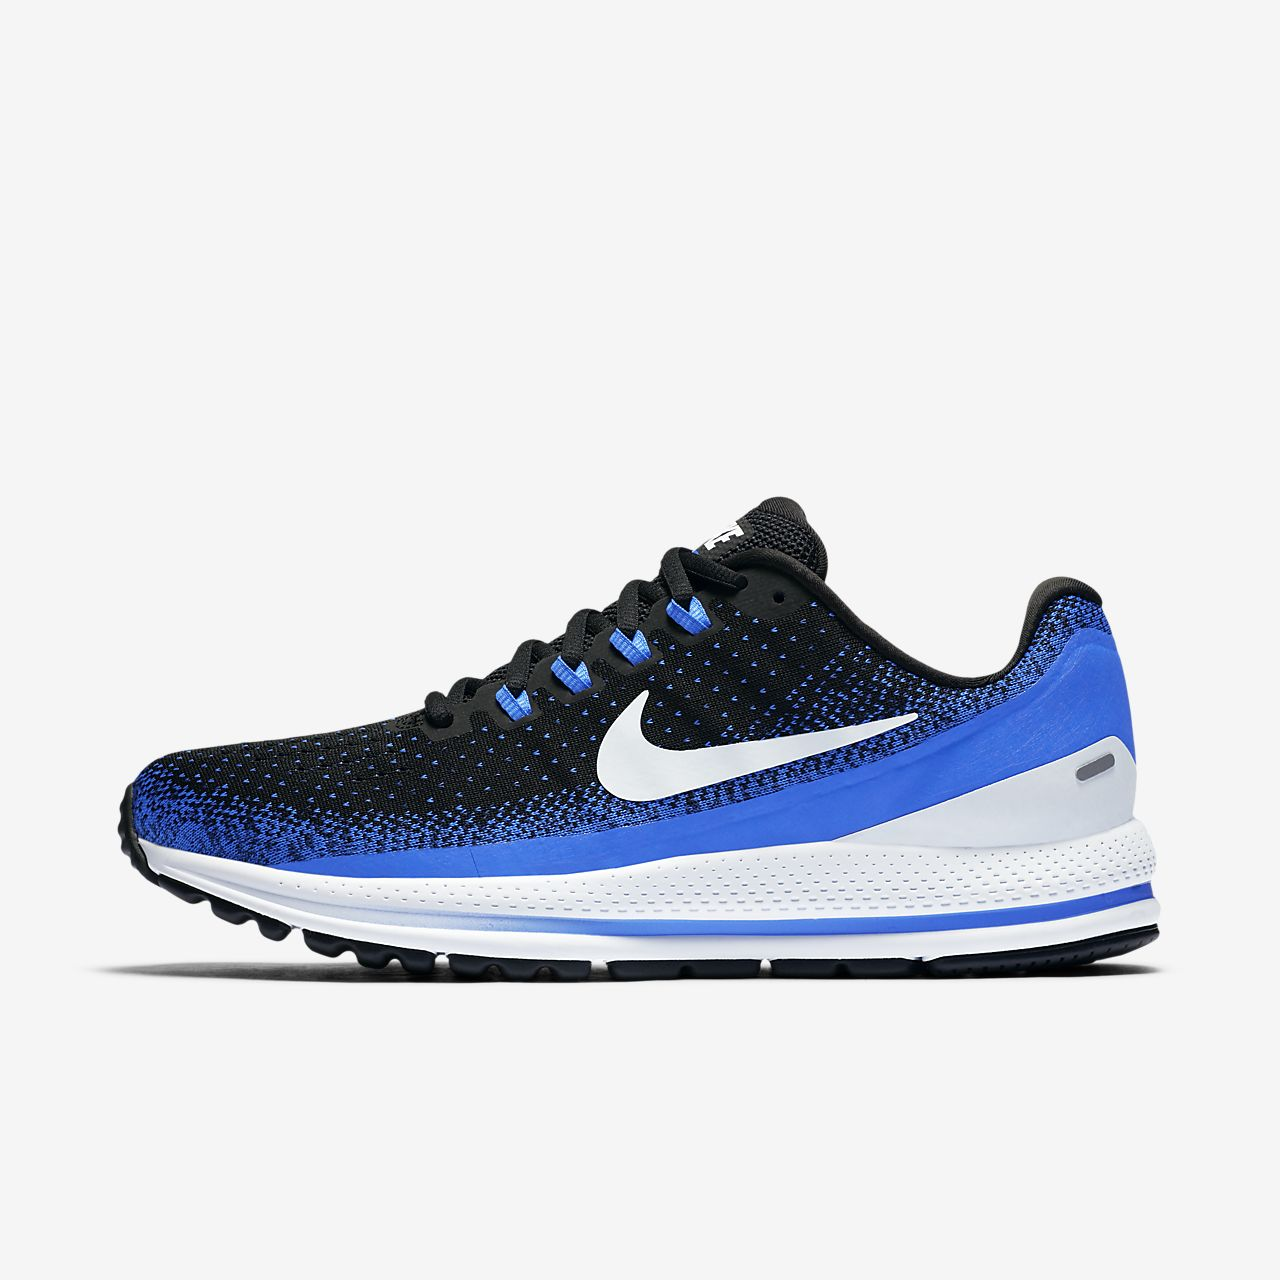 a8b5bc4f74e09 Nike Air Zoom Vomero 13 Men s Running Shoe. Nike.com SG